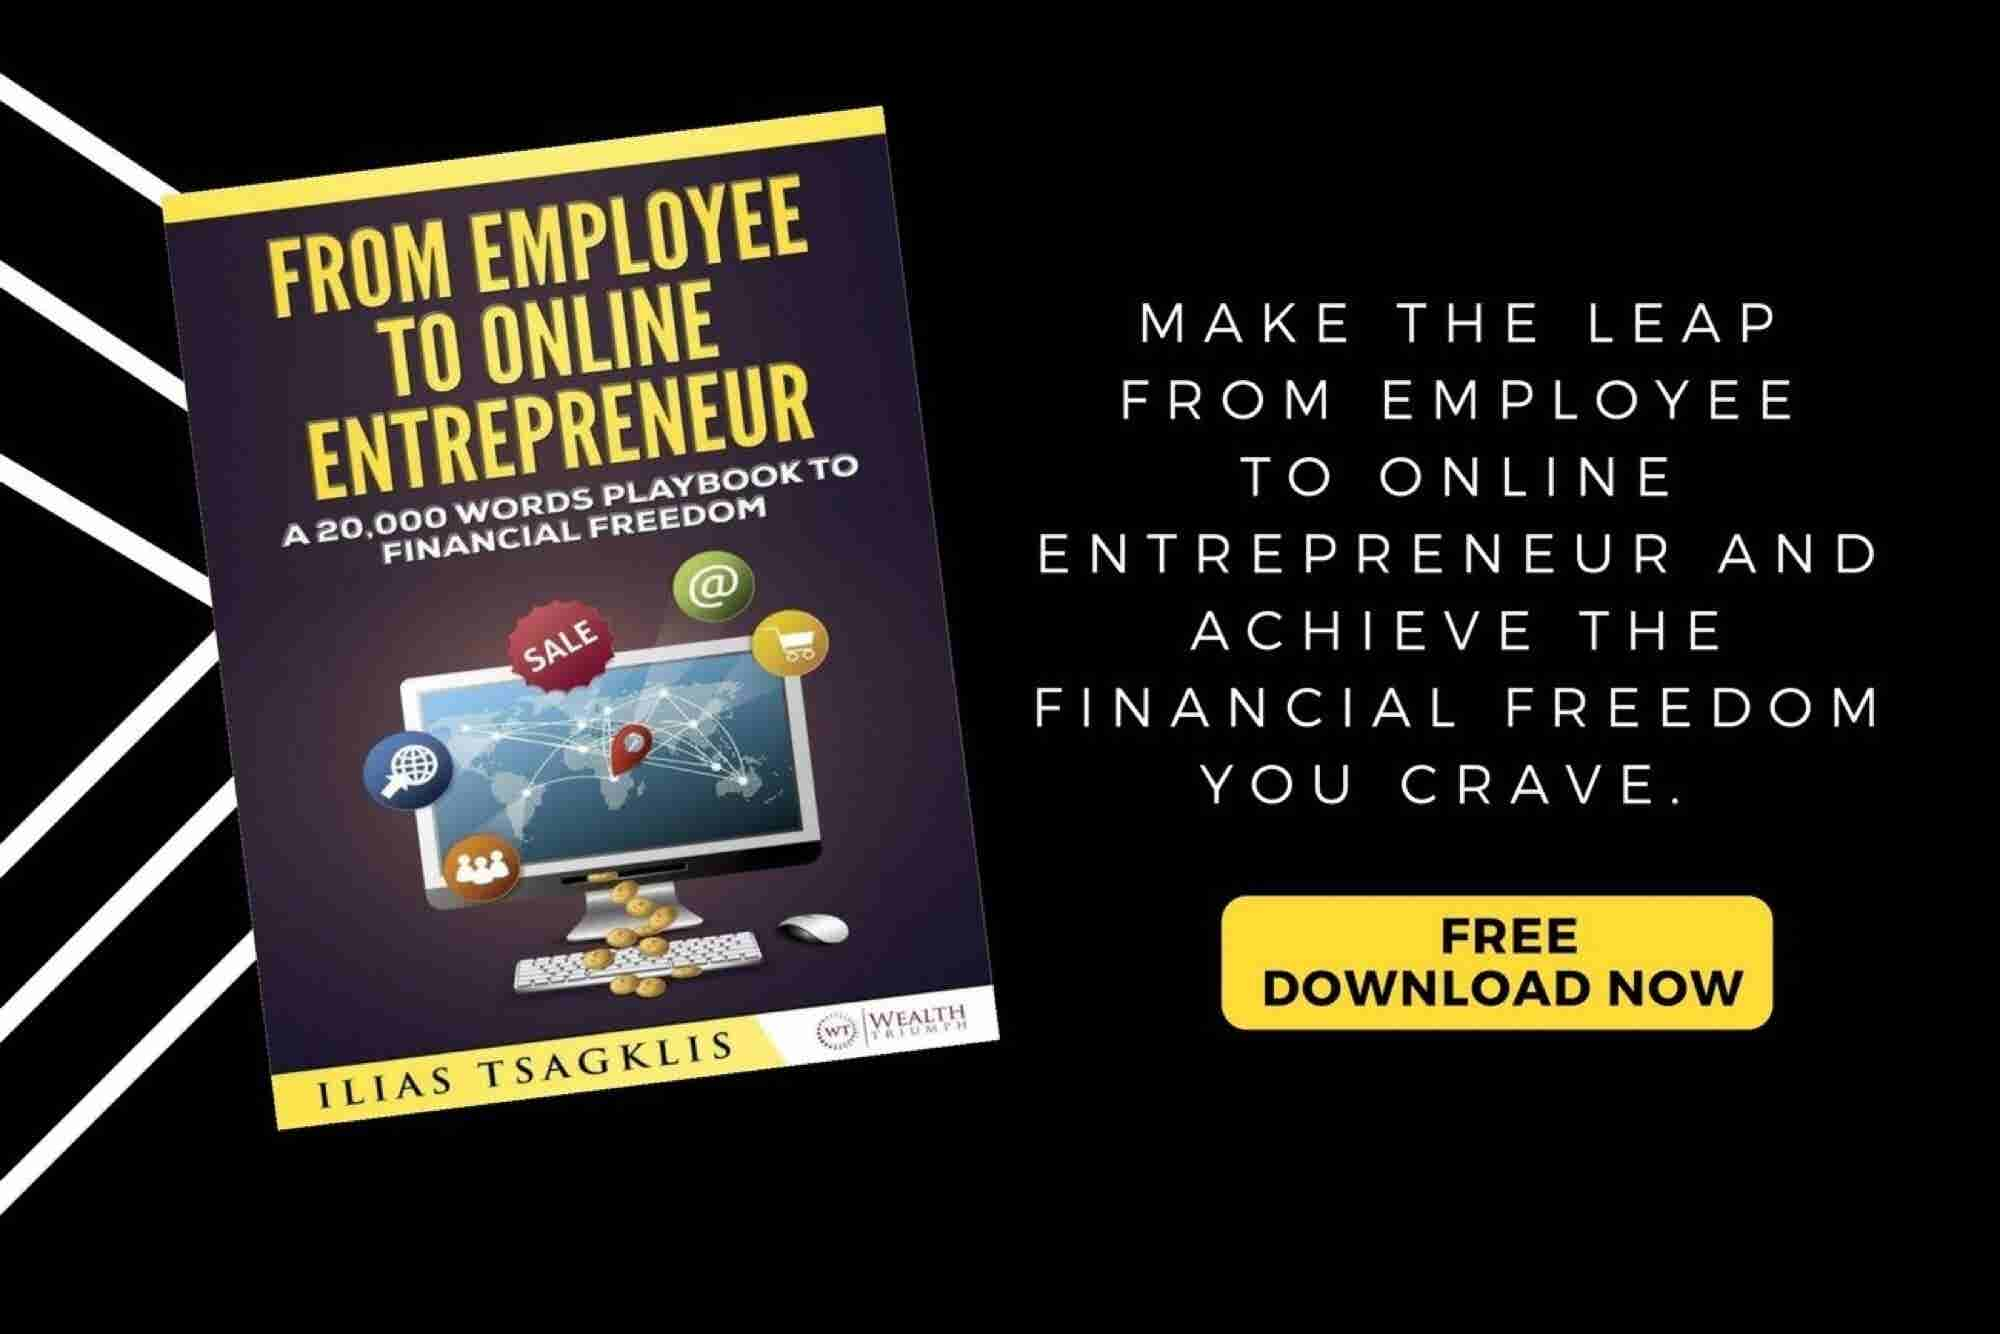 Take a Step Closer to Financial Freedom With a Free Copy of 'From Employee to Online Entrepreneur'